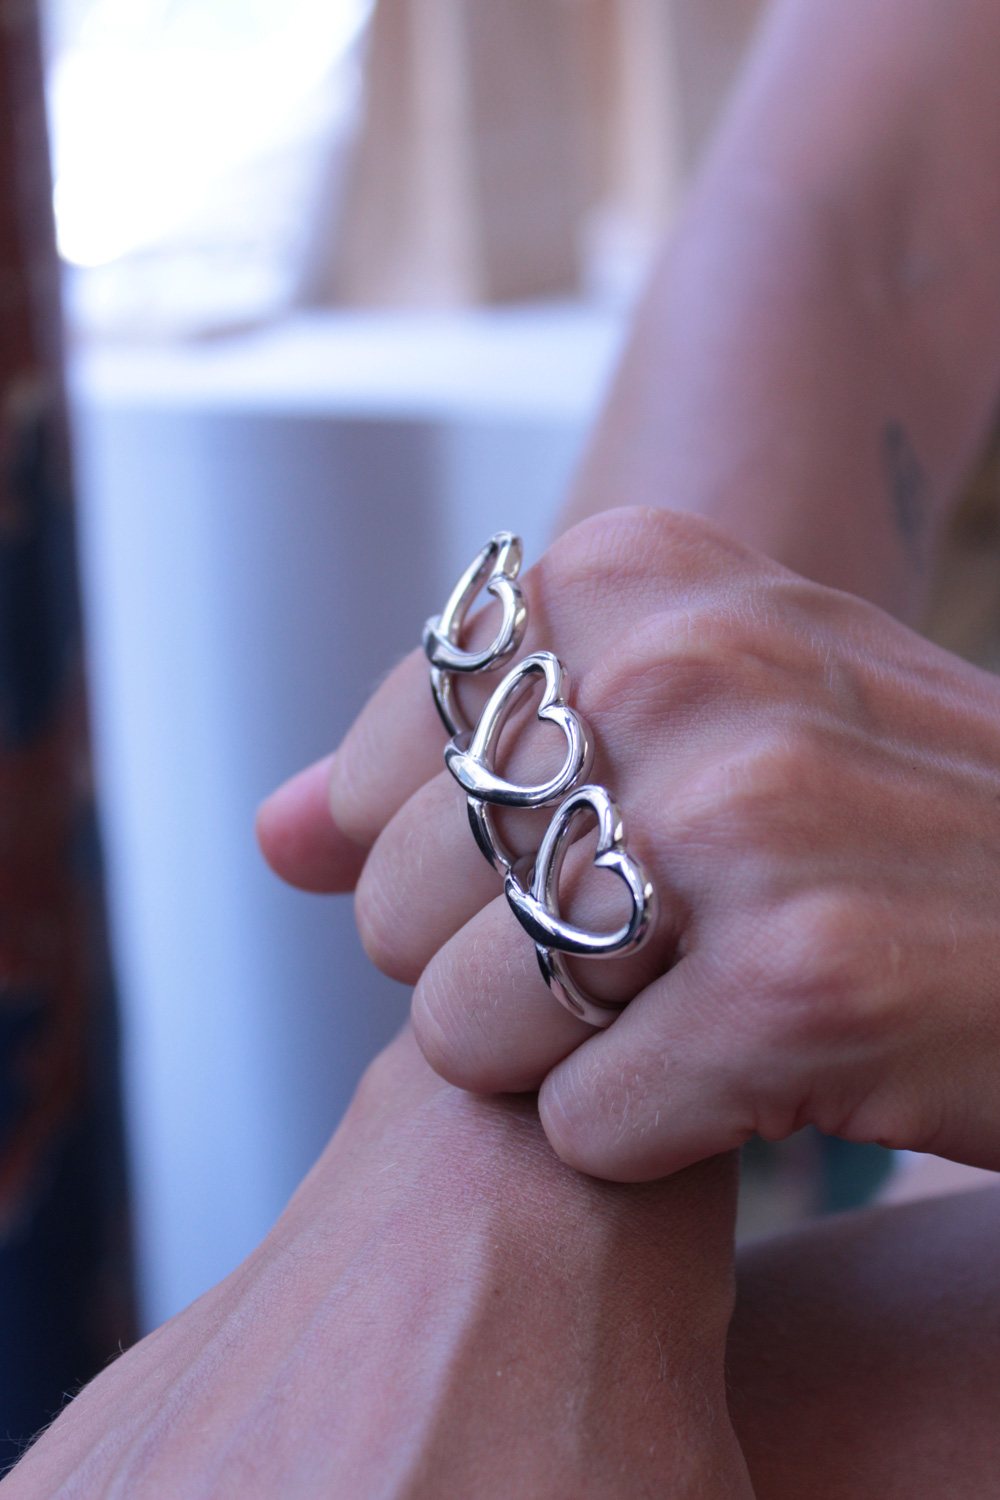 His ever popular heart ring that comes in silver and gold.